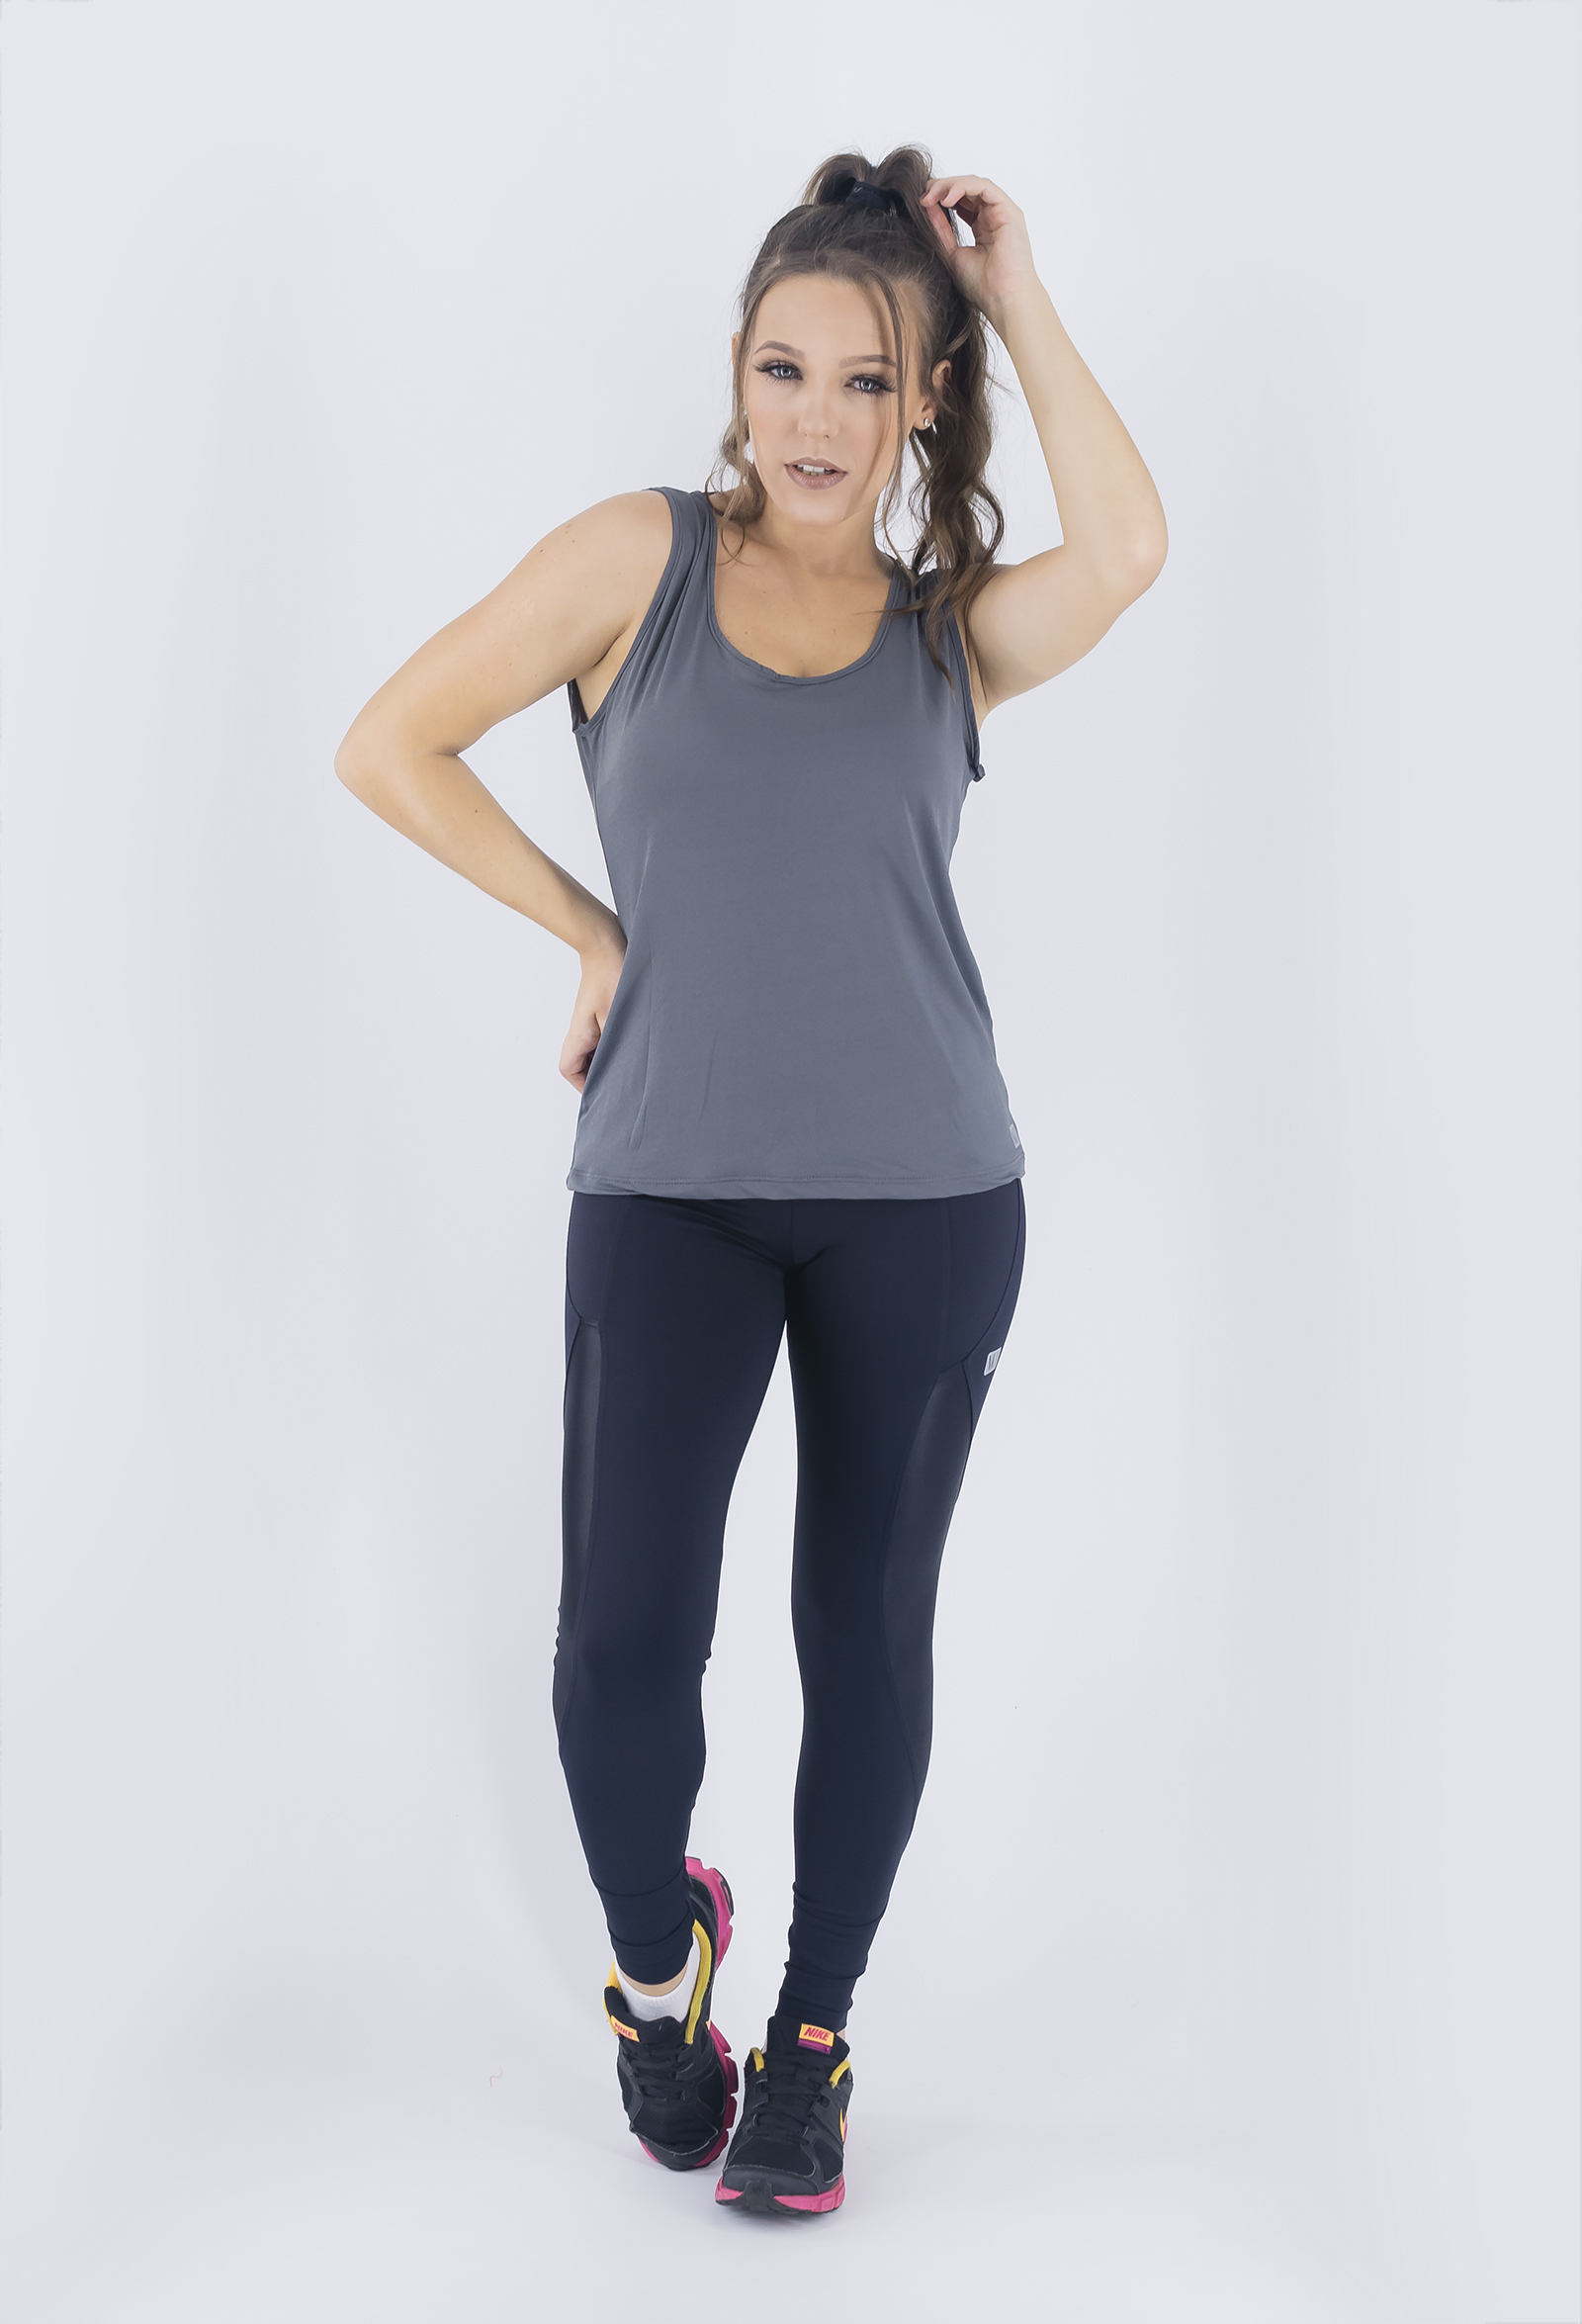 Regata Unique Chumbo, Coleção Just For You - NKT Fitwear Moda Fitness